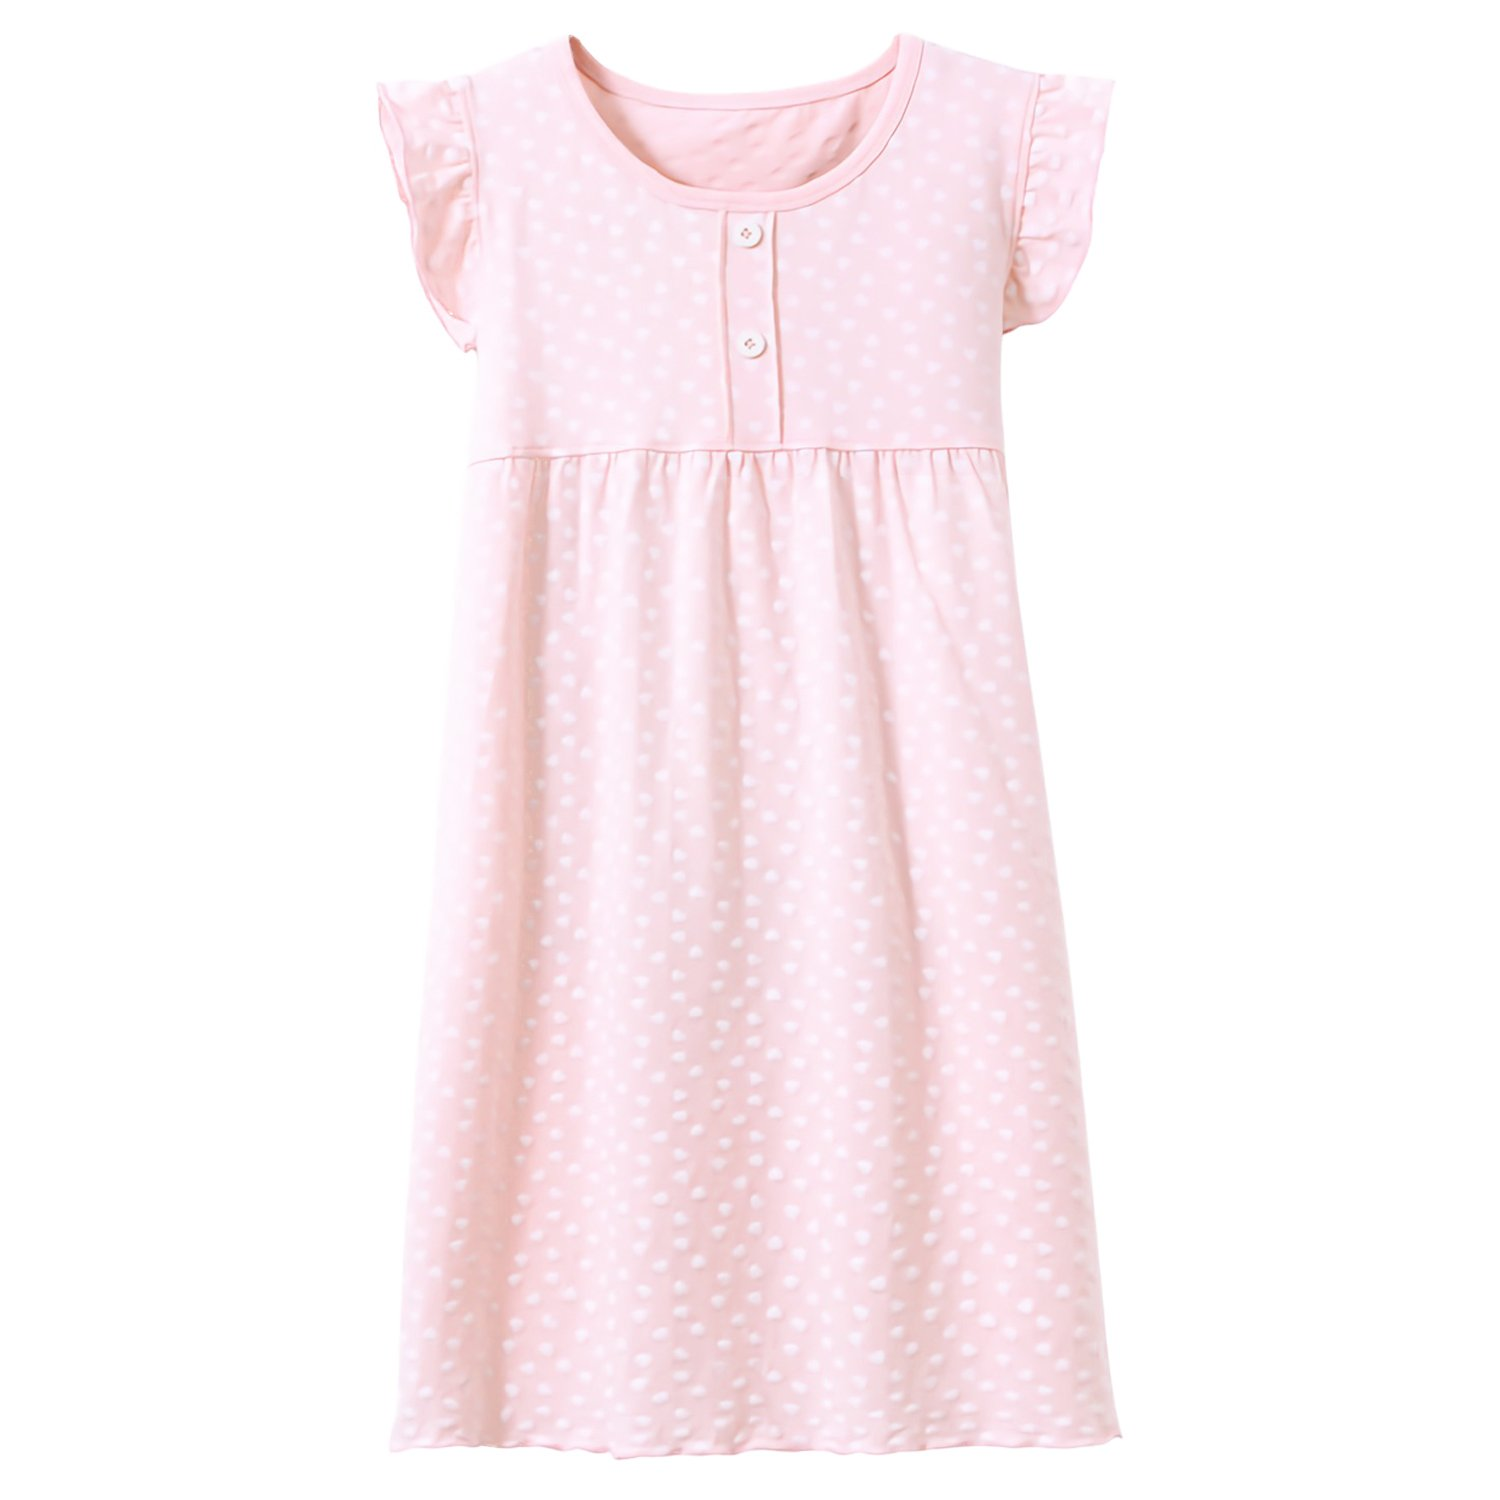 Little Girls' Princess Nightgowns Heart Printing Sleep Shirts Jersey Nightdress Pink 5t